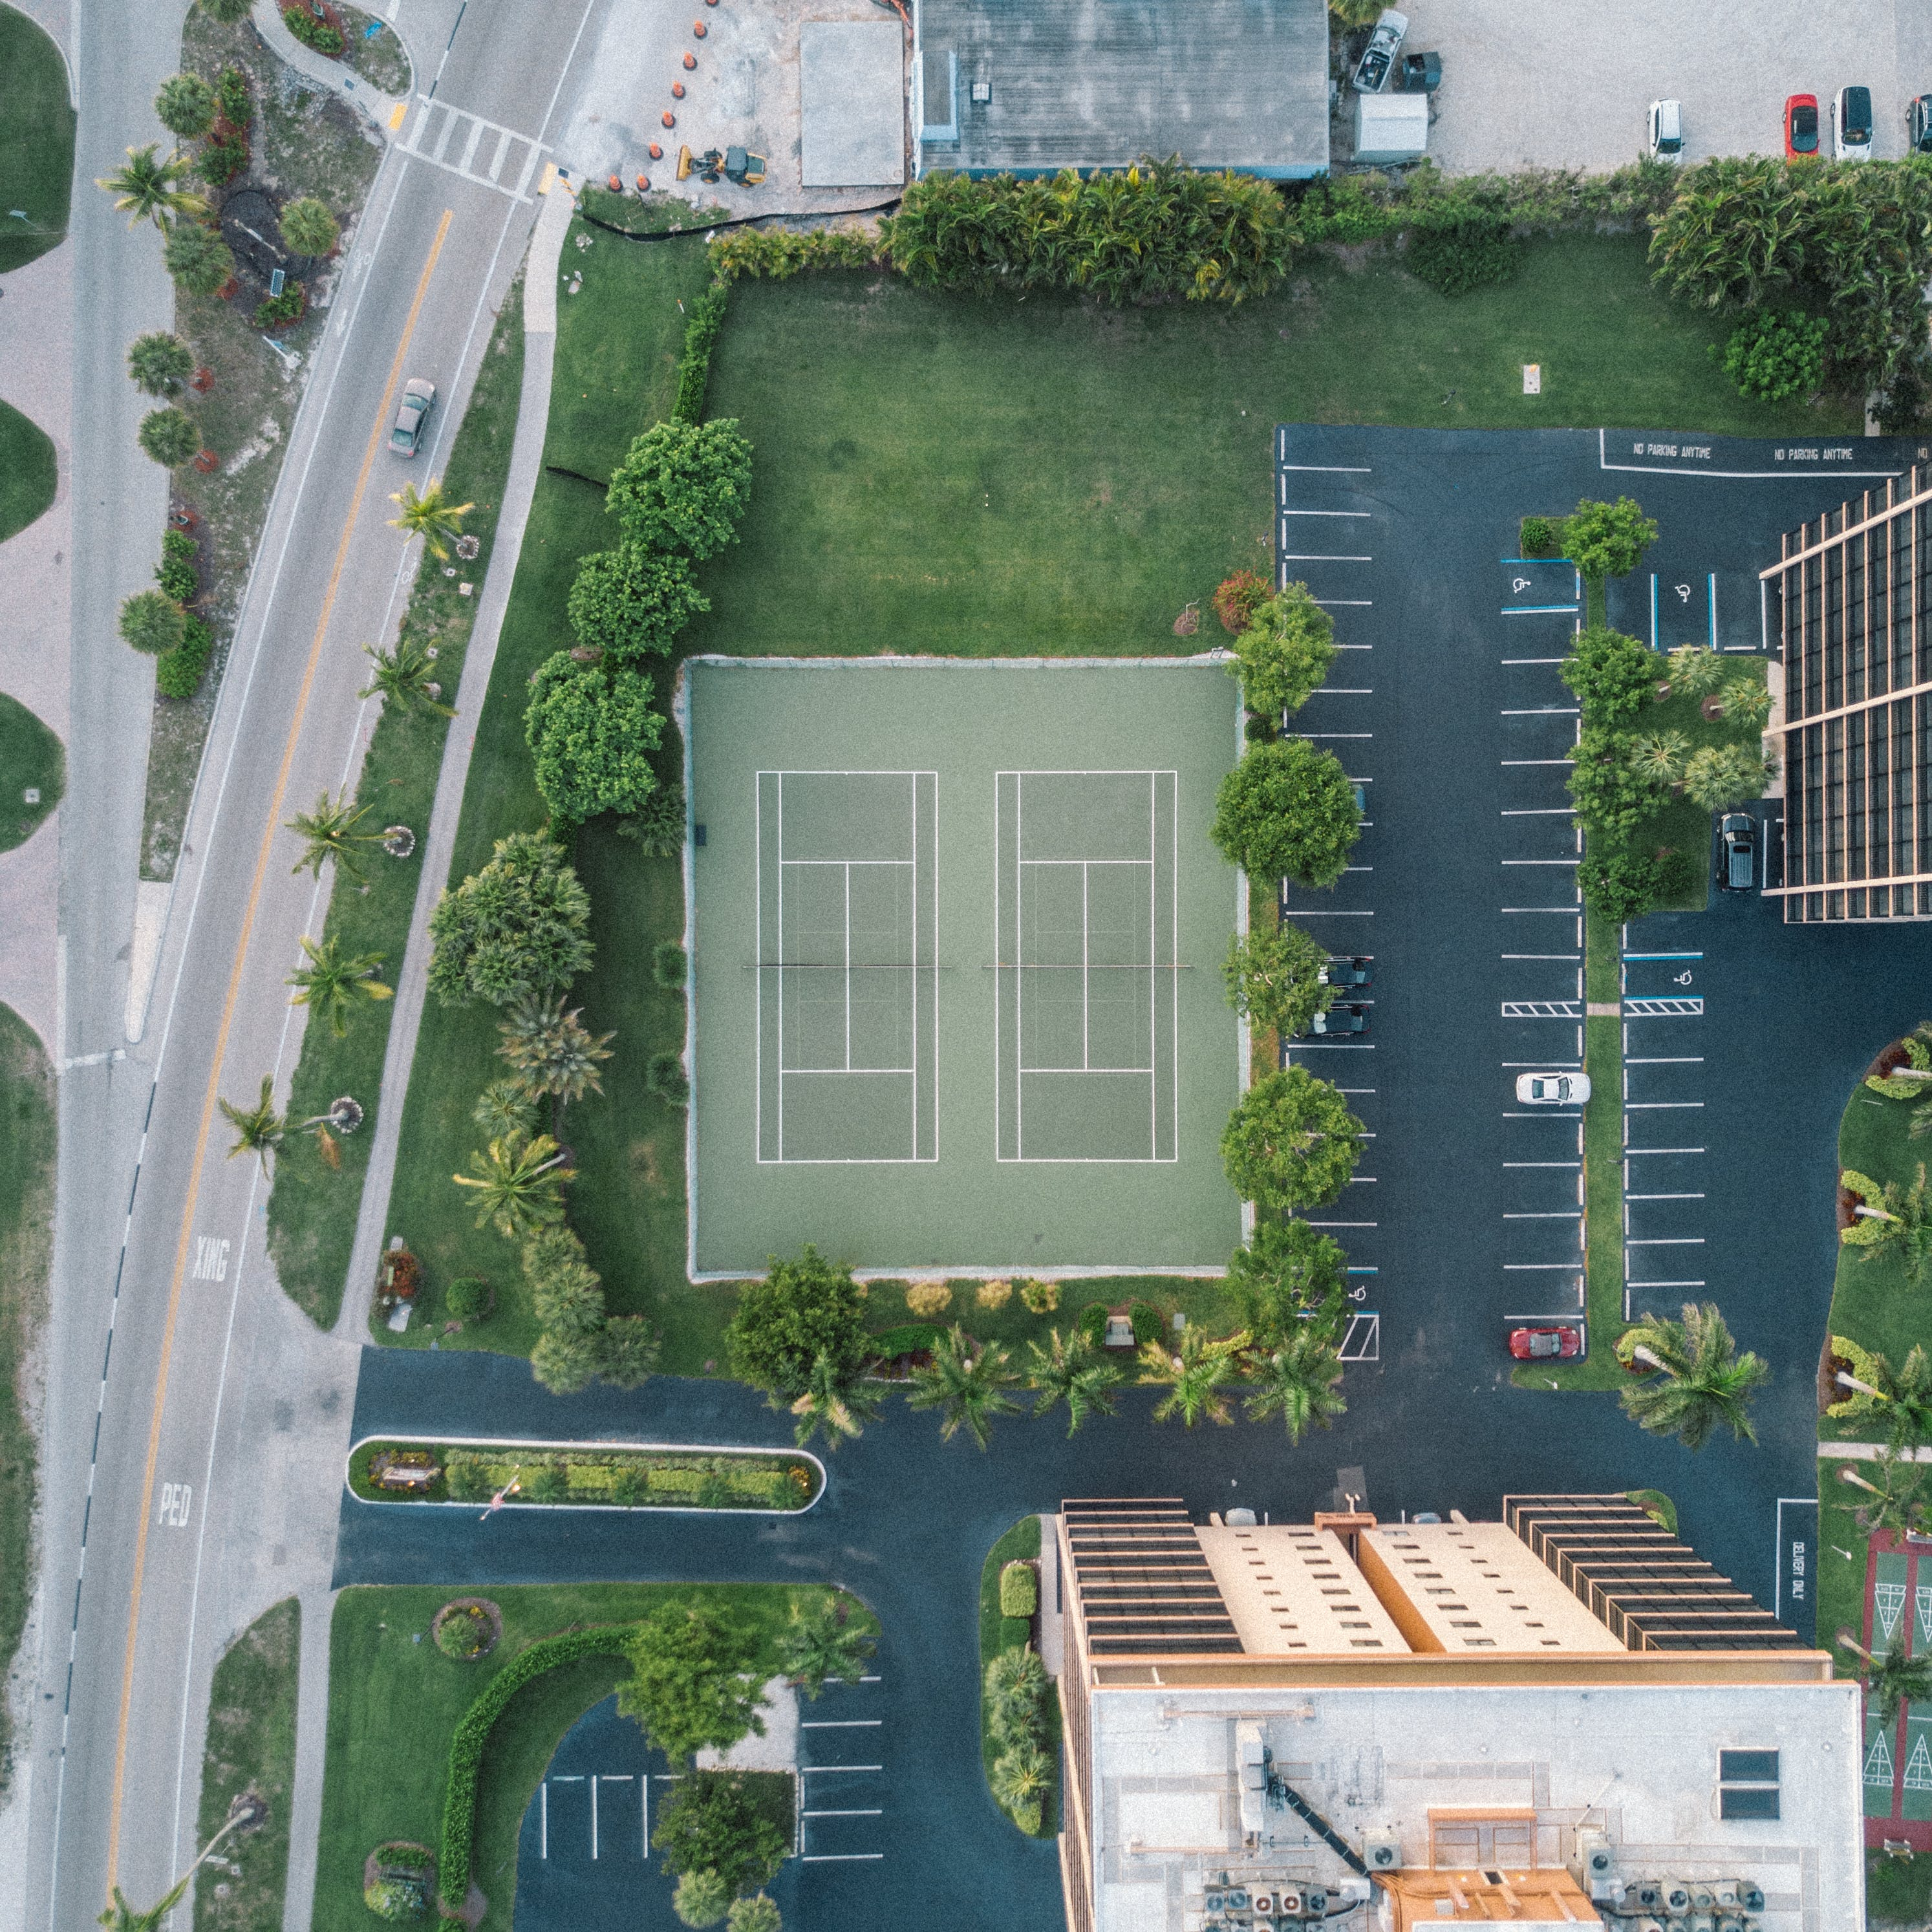 Aerial Photography of Green Lawn